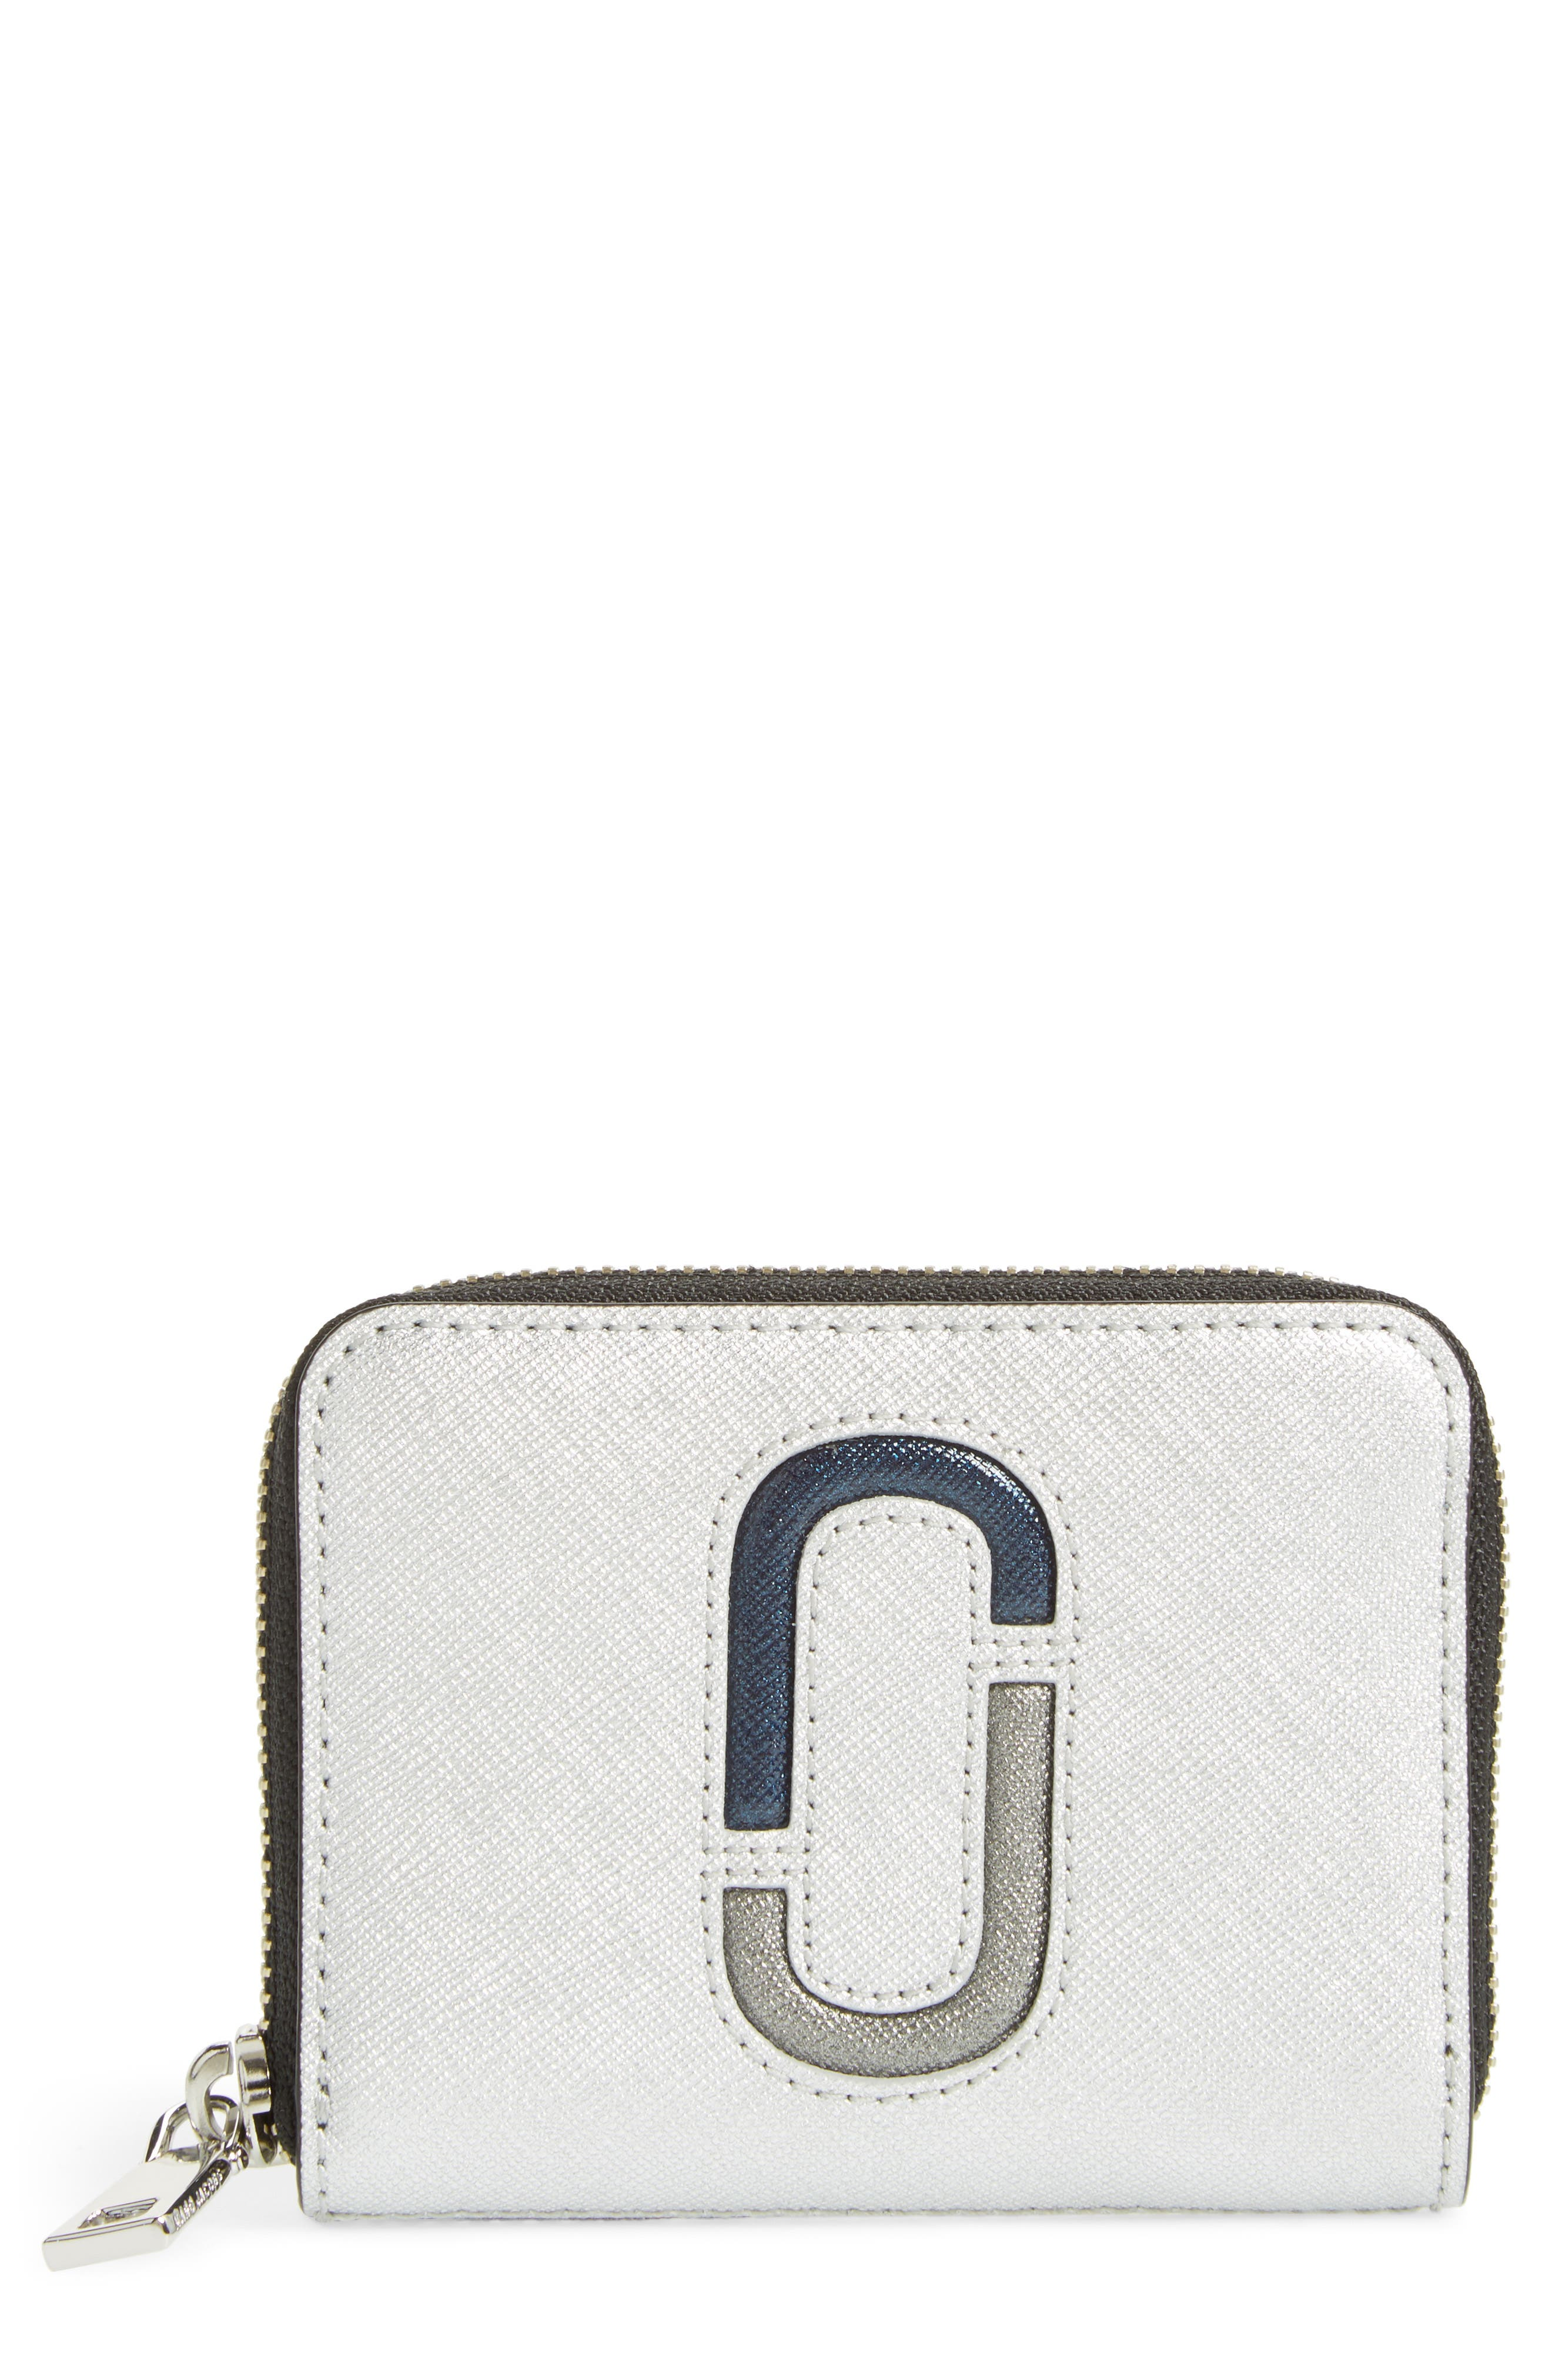 Snapshot Saffiano Leather Zip Around Wallet,                         Main,                         color, 040